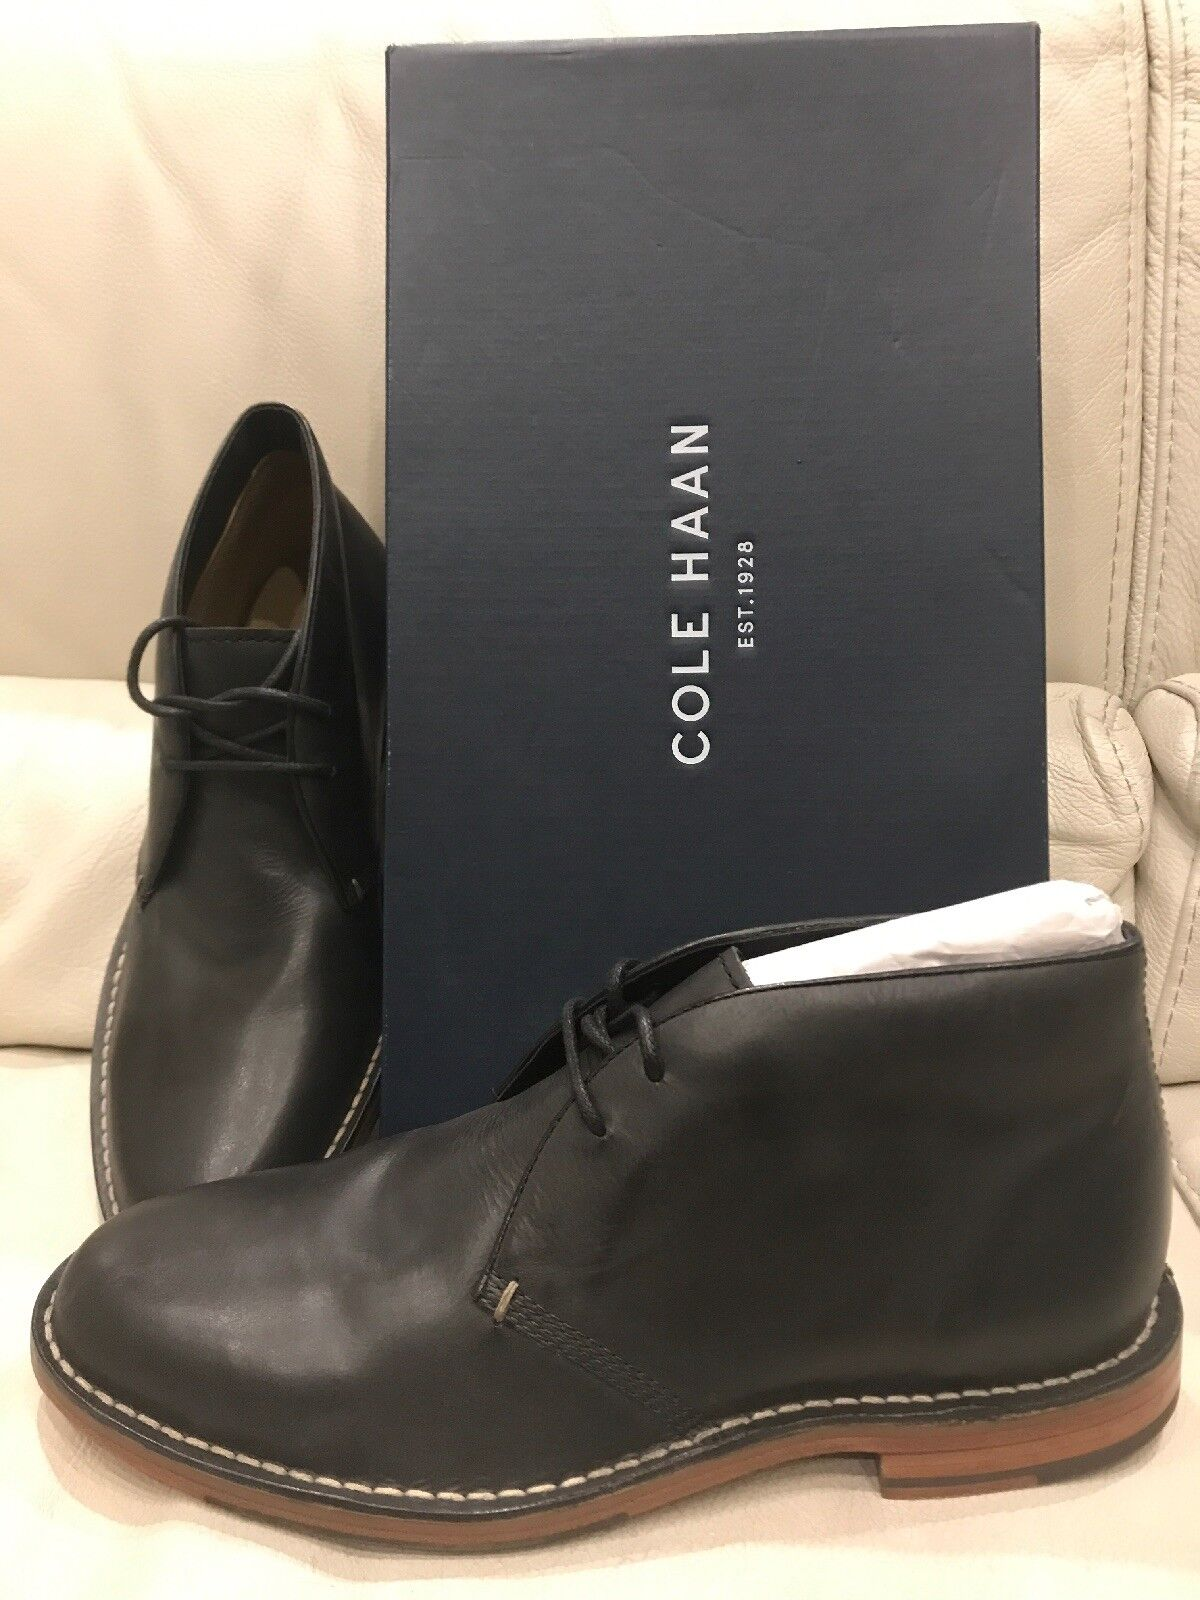 AUTHENTIC COLE HAAN GROVER CHUKKA ANKLE BOOT BLACK LEATHER MEN'S SHOES 8 CLASSIC